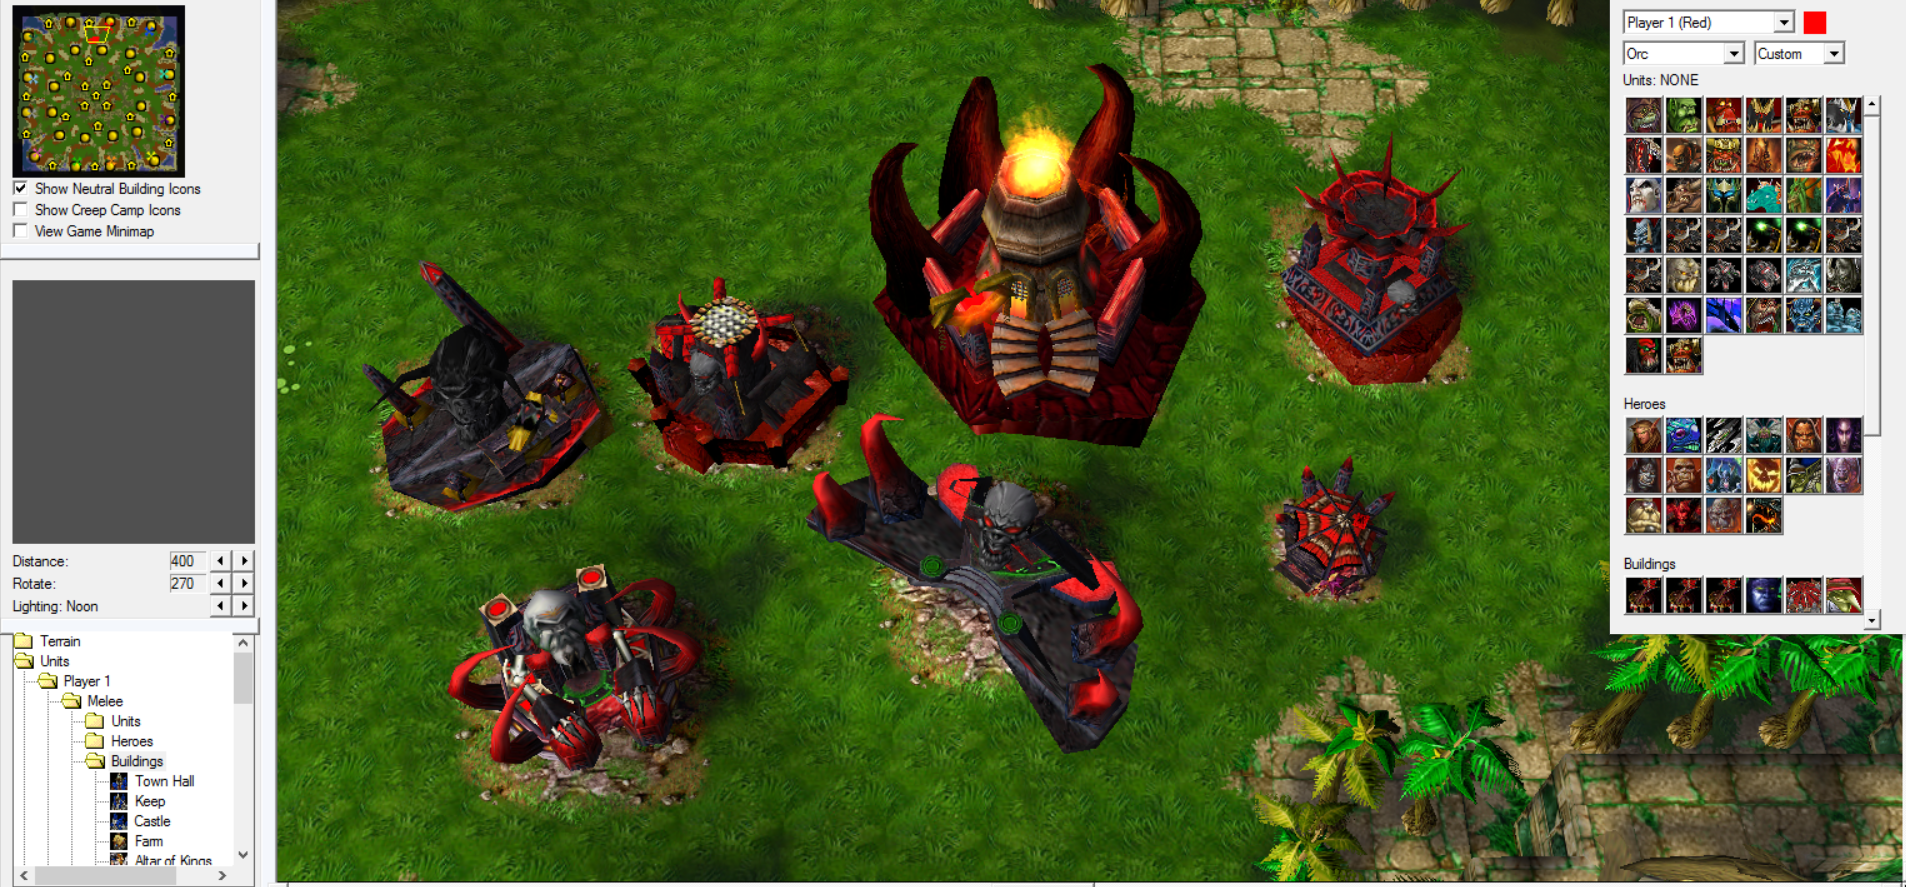 Fel Orc Buildings Image Warcraft 3 Heroes Of The Storm Mod For